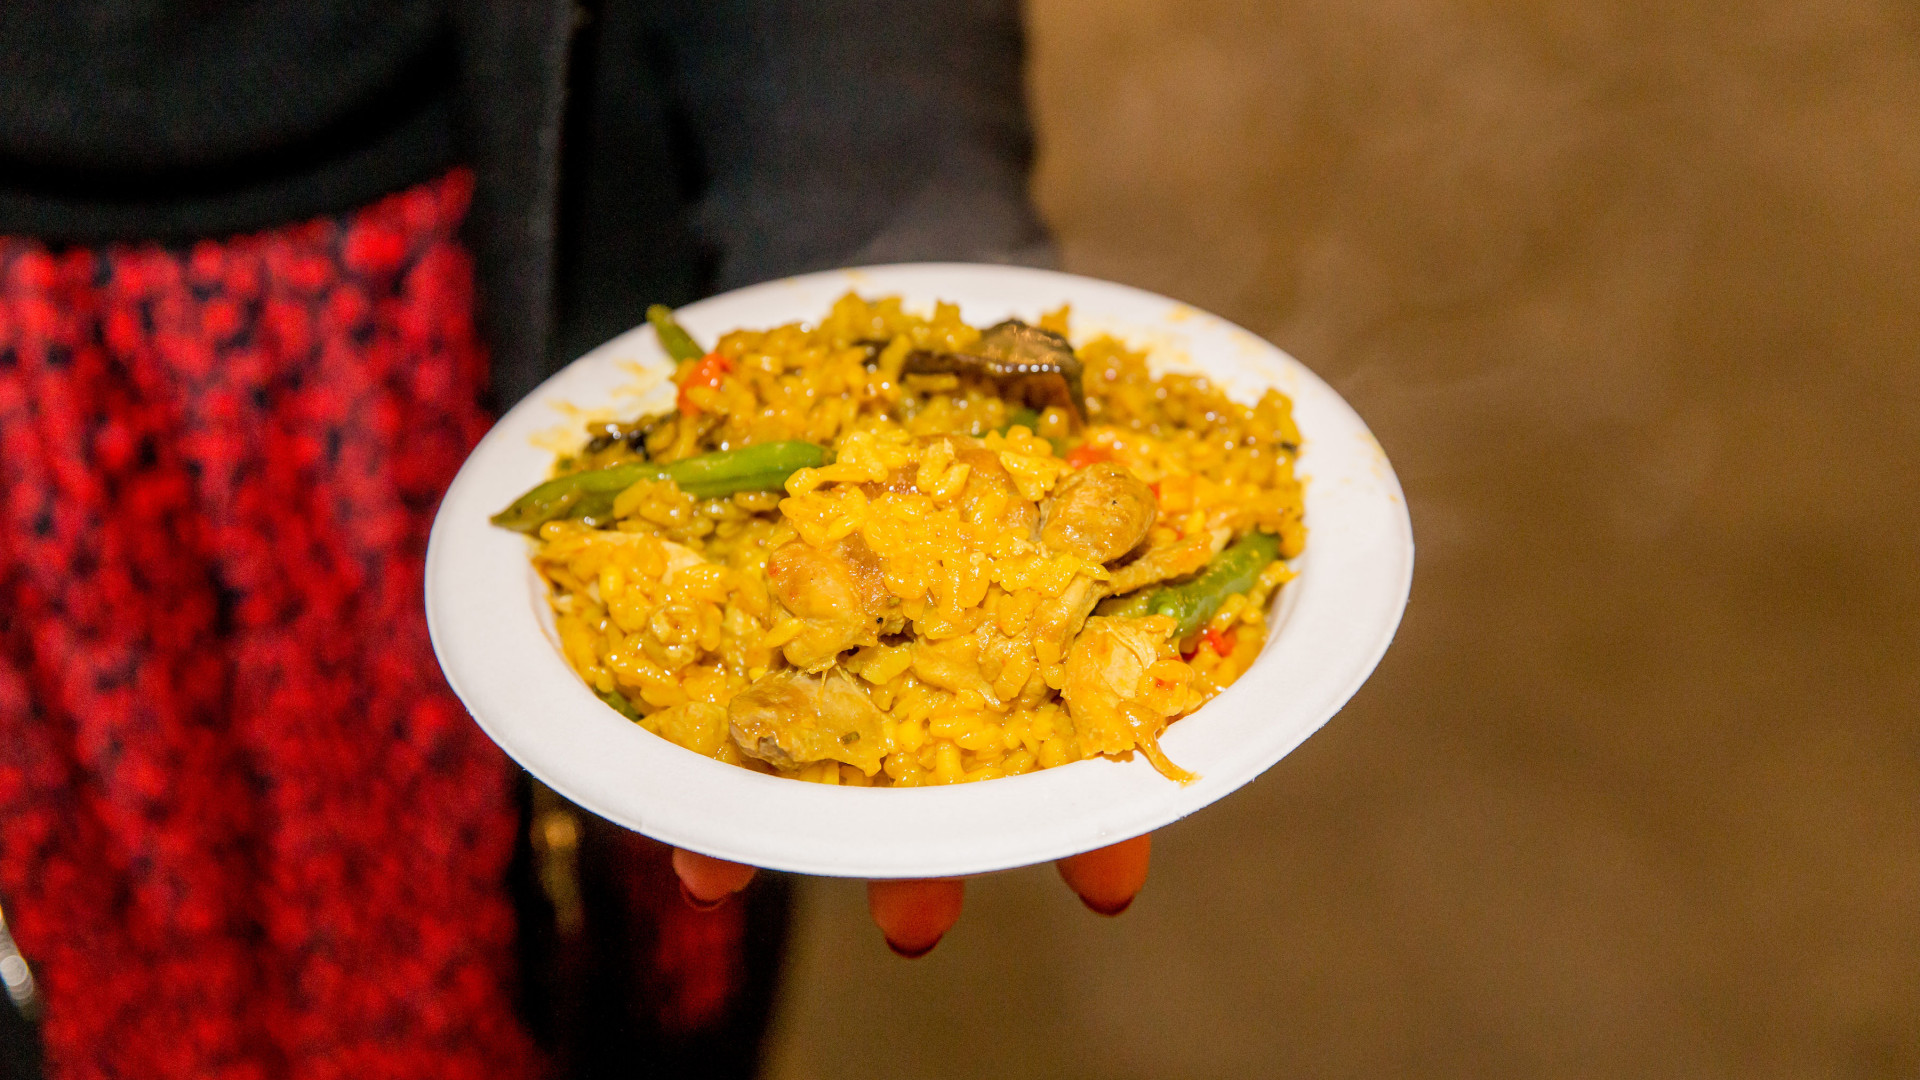 The Foodism 100 awards night 2019: Paella from Crocus Paella